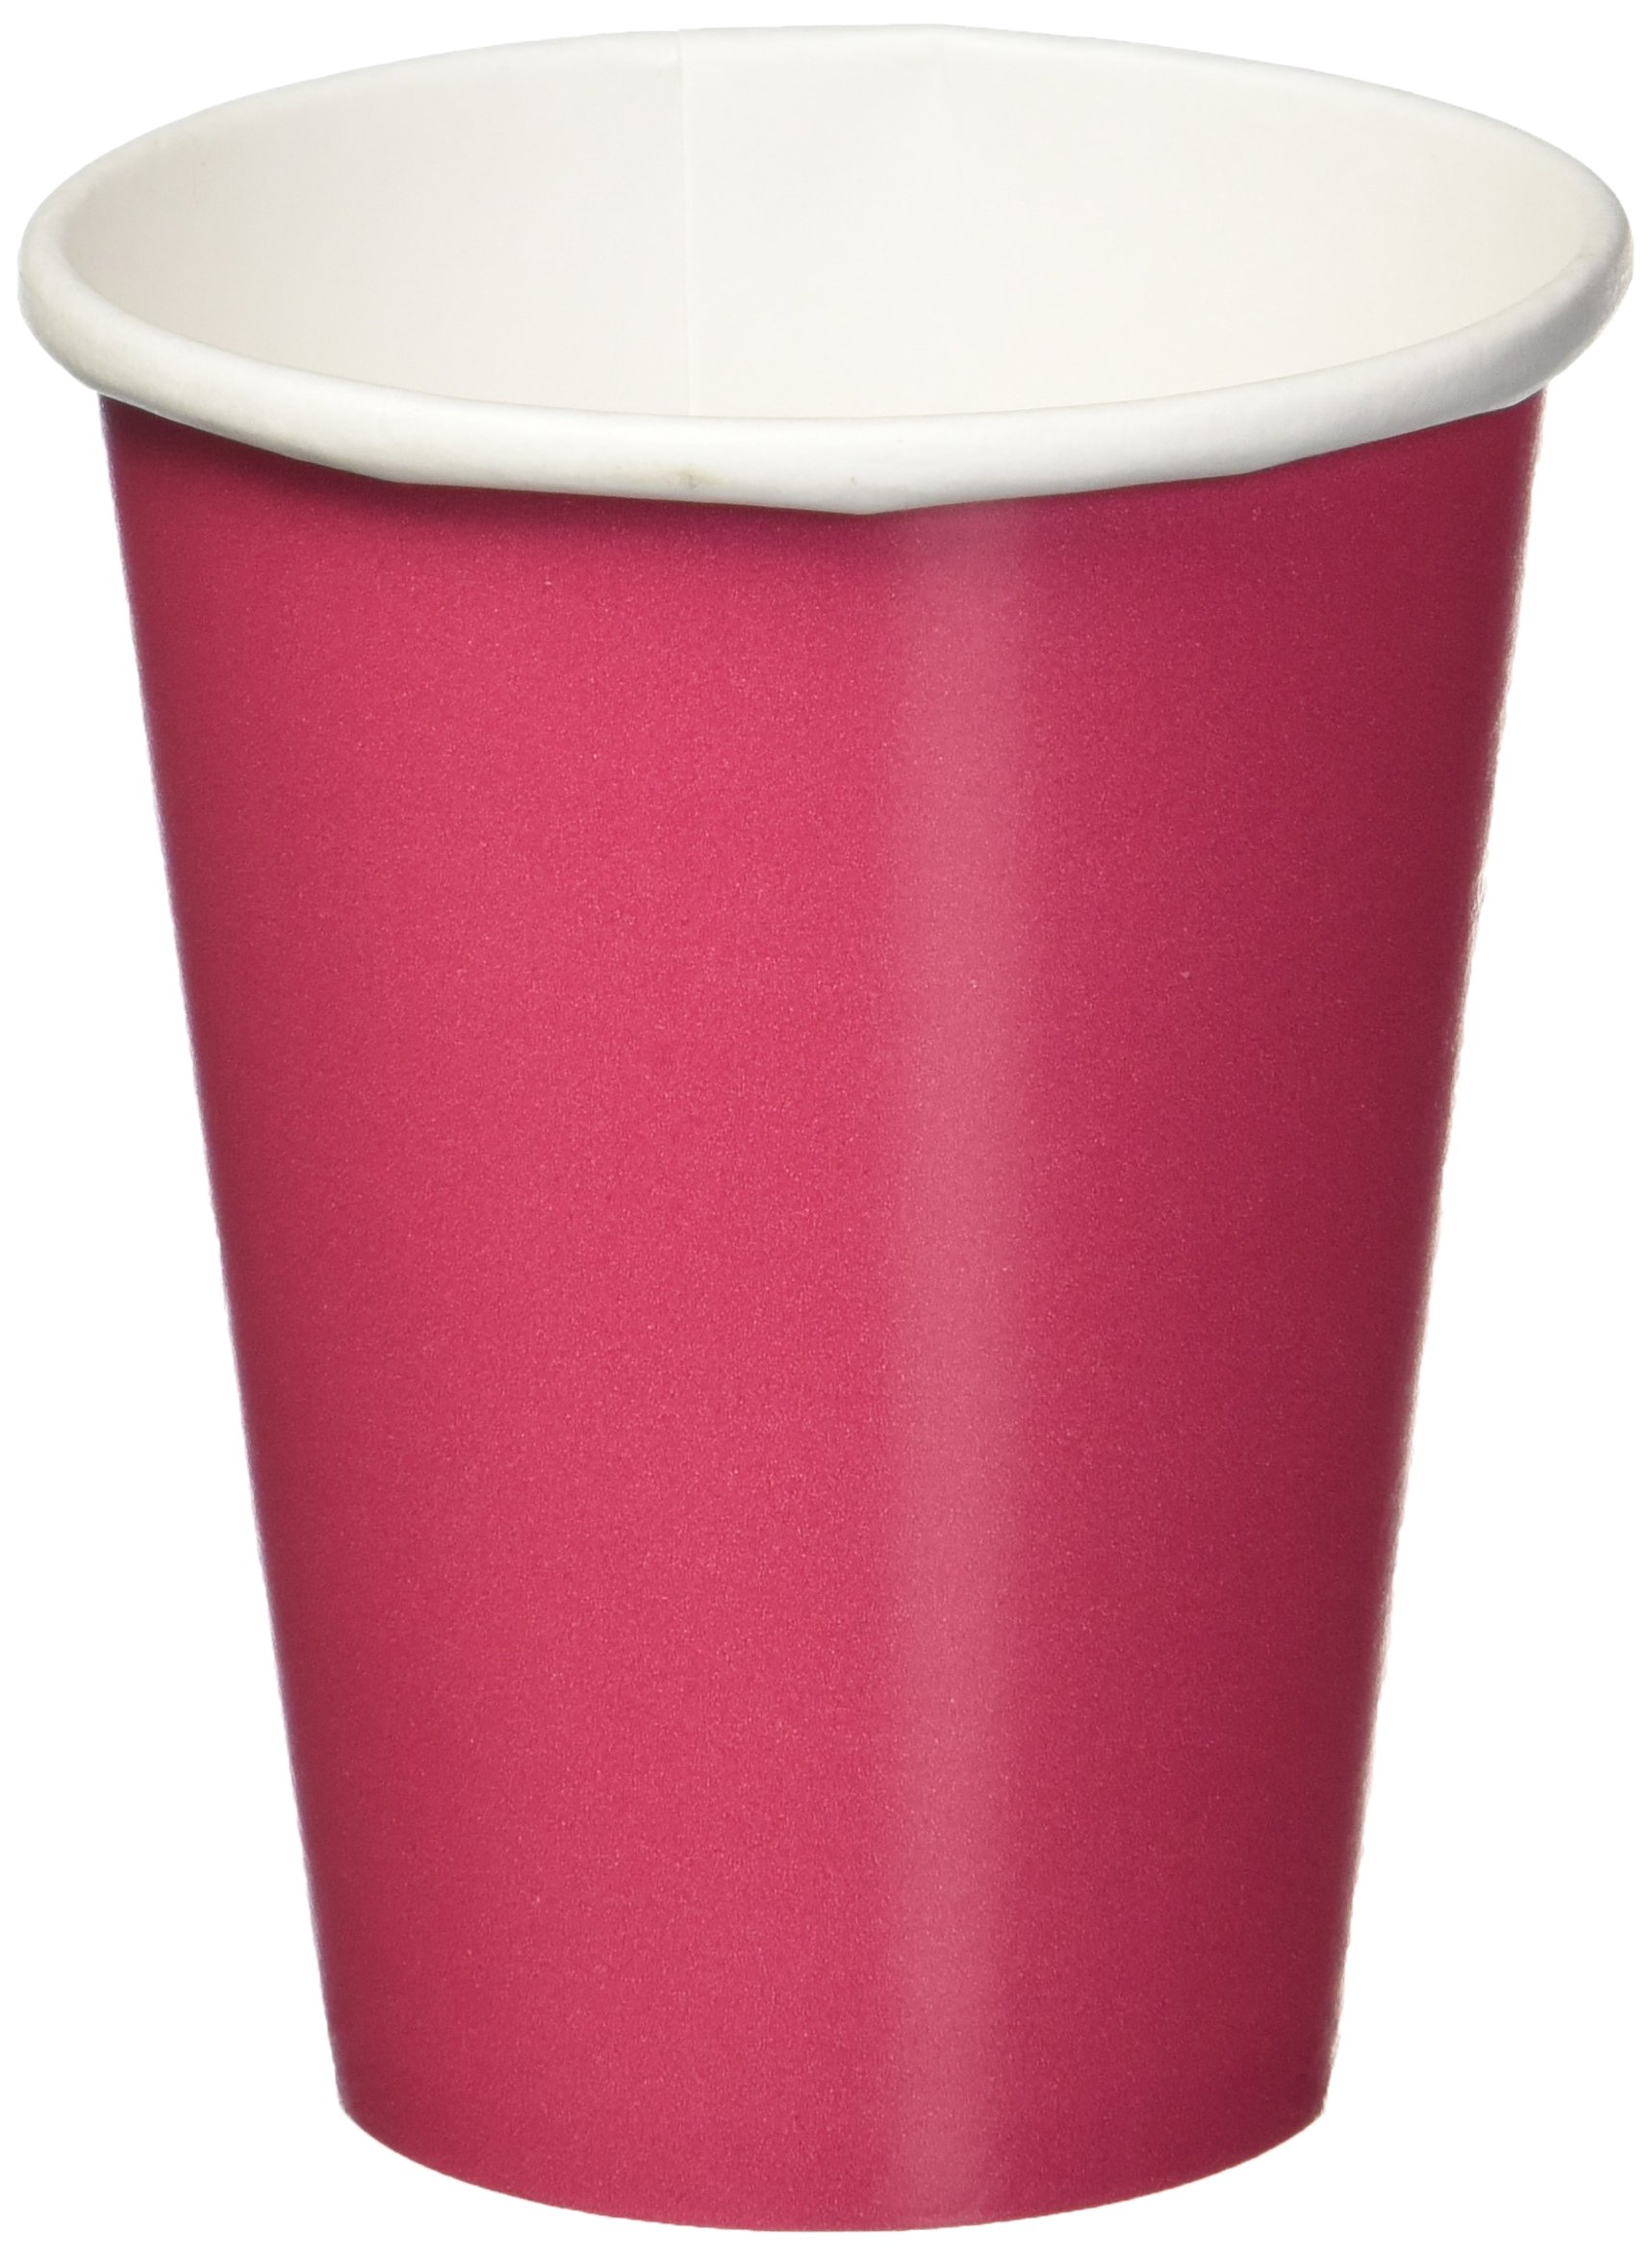 Amscan Disposable Hot and Cold Beverage Paper Cups Tableware Saver Pack Party Supplies (120 Piece), Magenta, 9 Ounce by Amscan